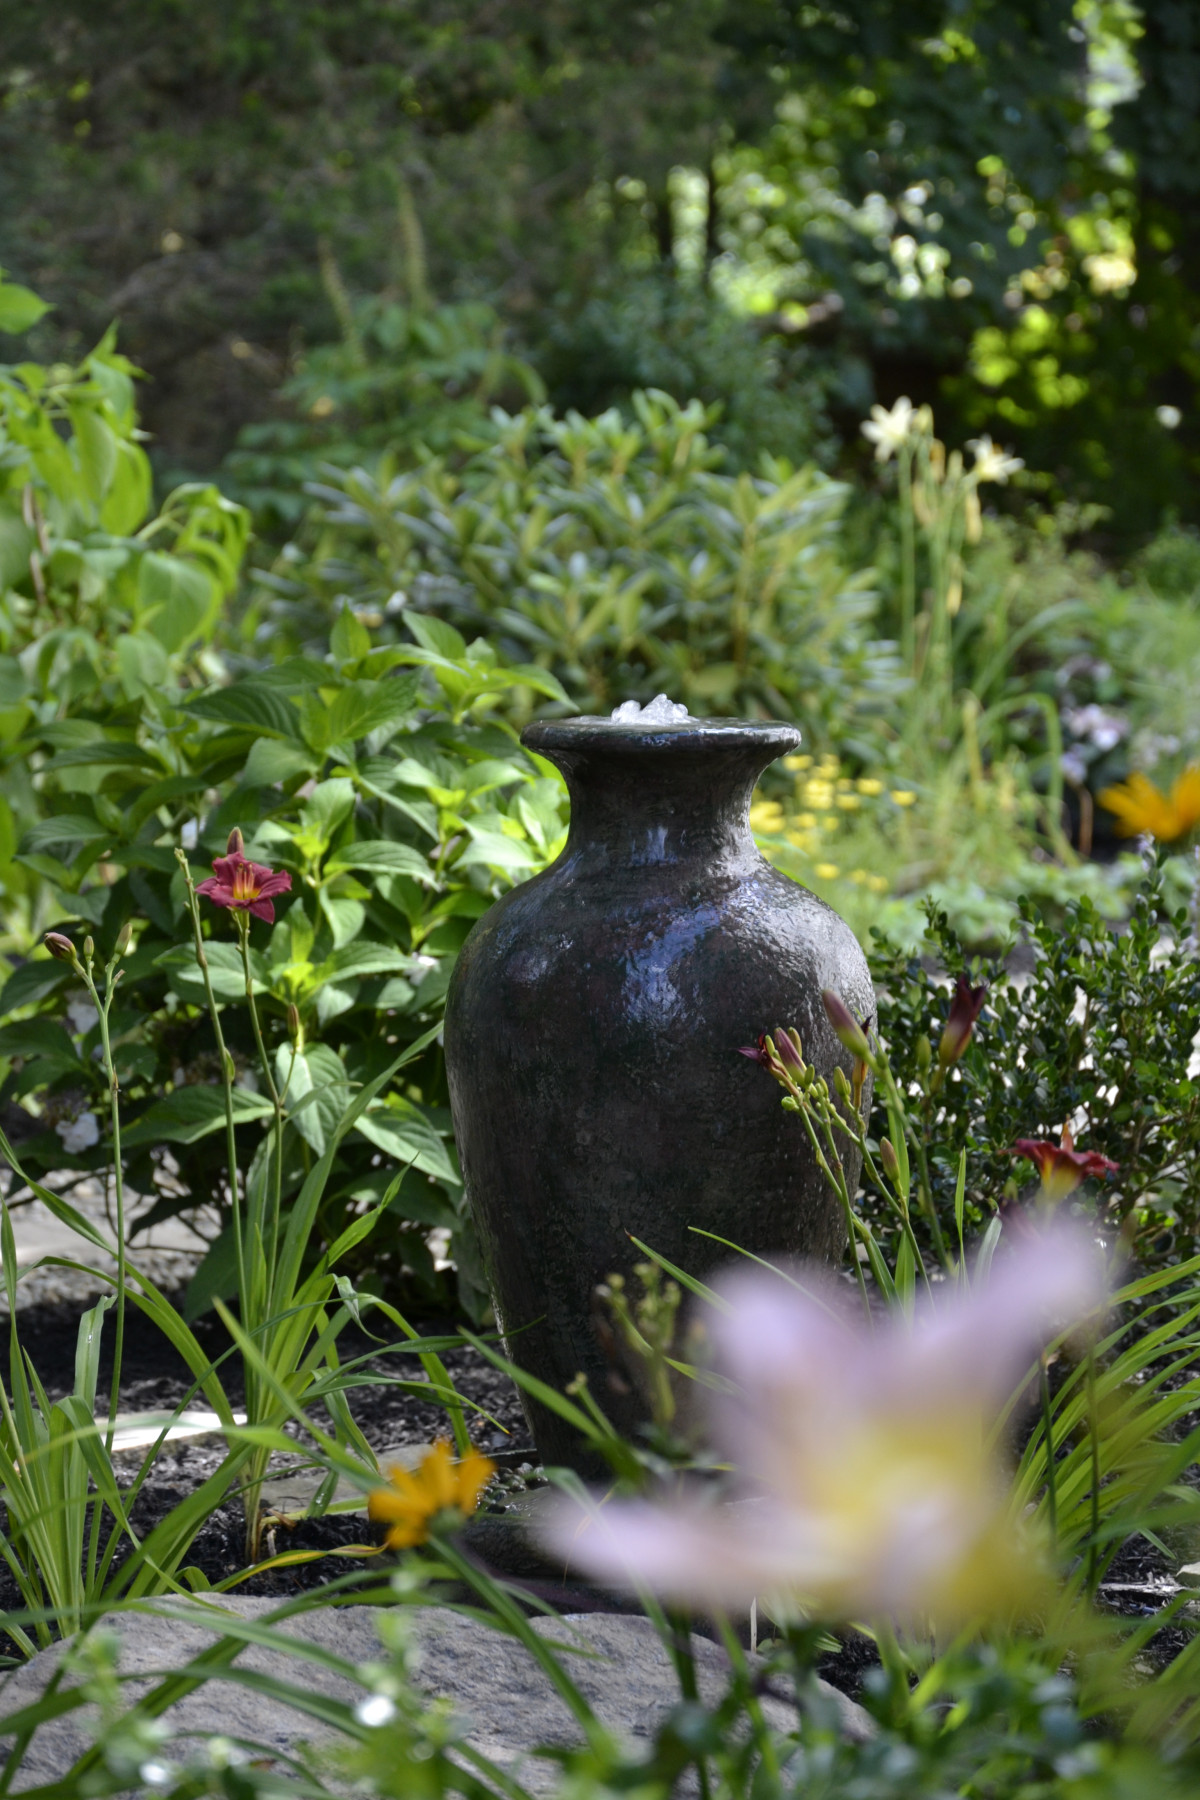 Williamstown – Small recirculating water feature amongst perennials